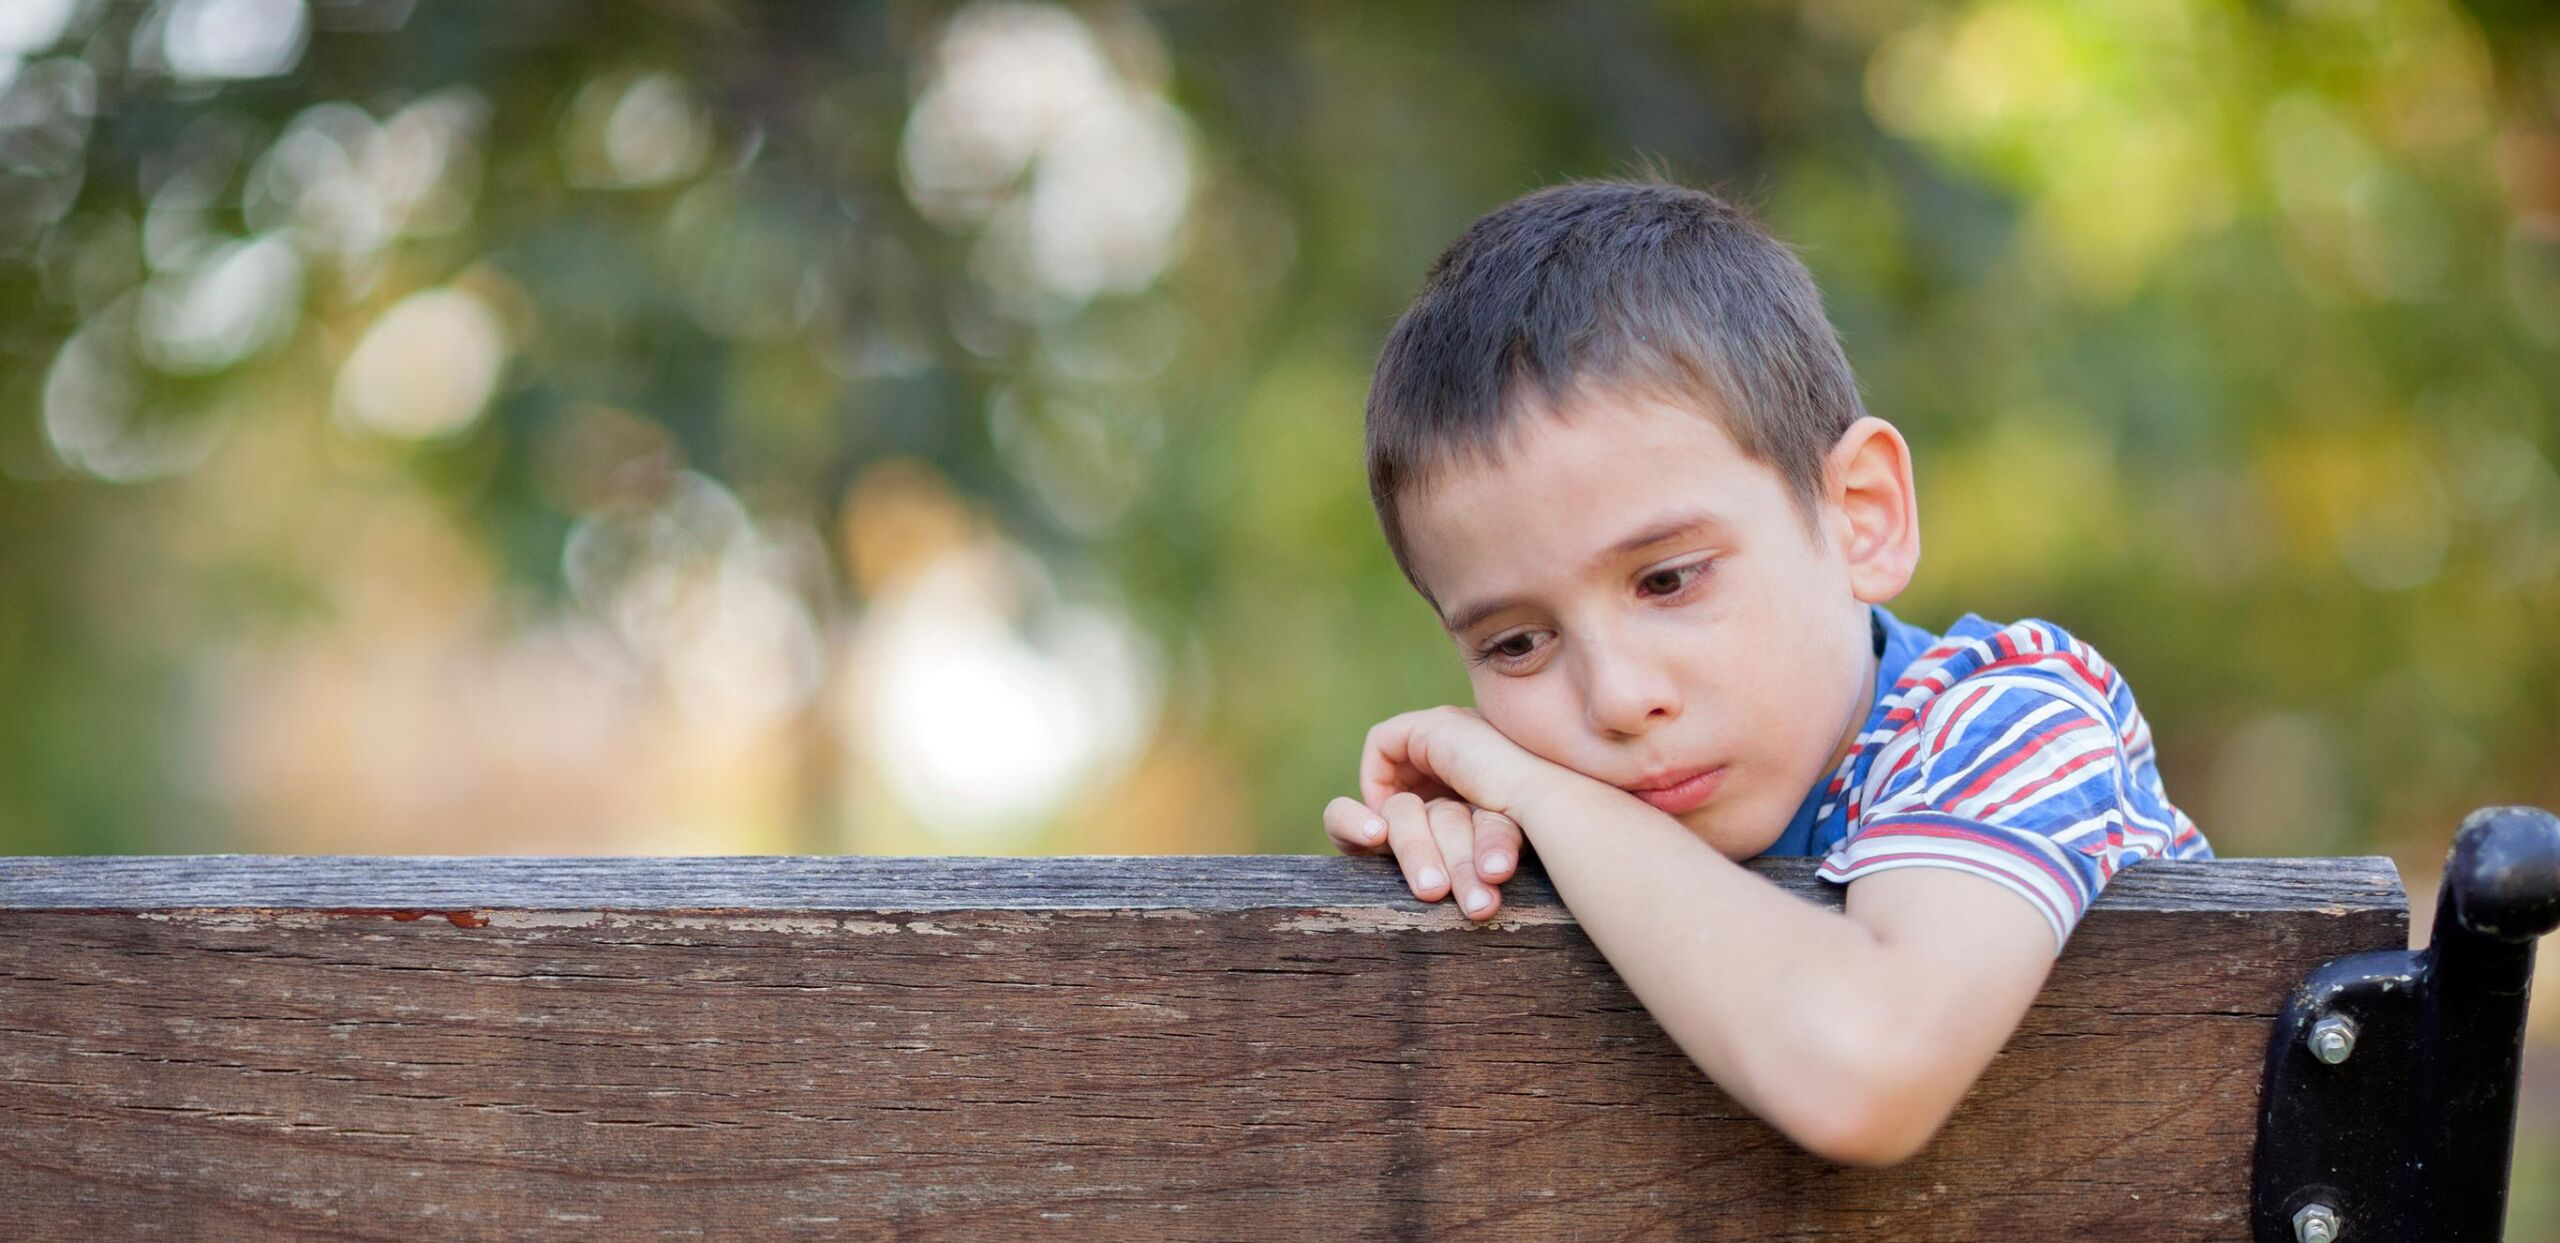 Grieving boy on bench, The Garden, Cooley Dickinson Medical Group VNA and Hospice, Northampton, MA 01060.